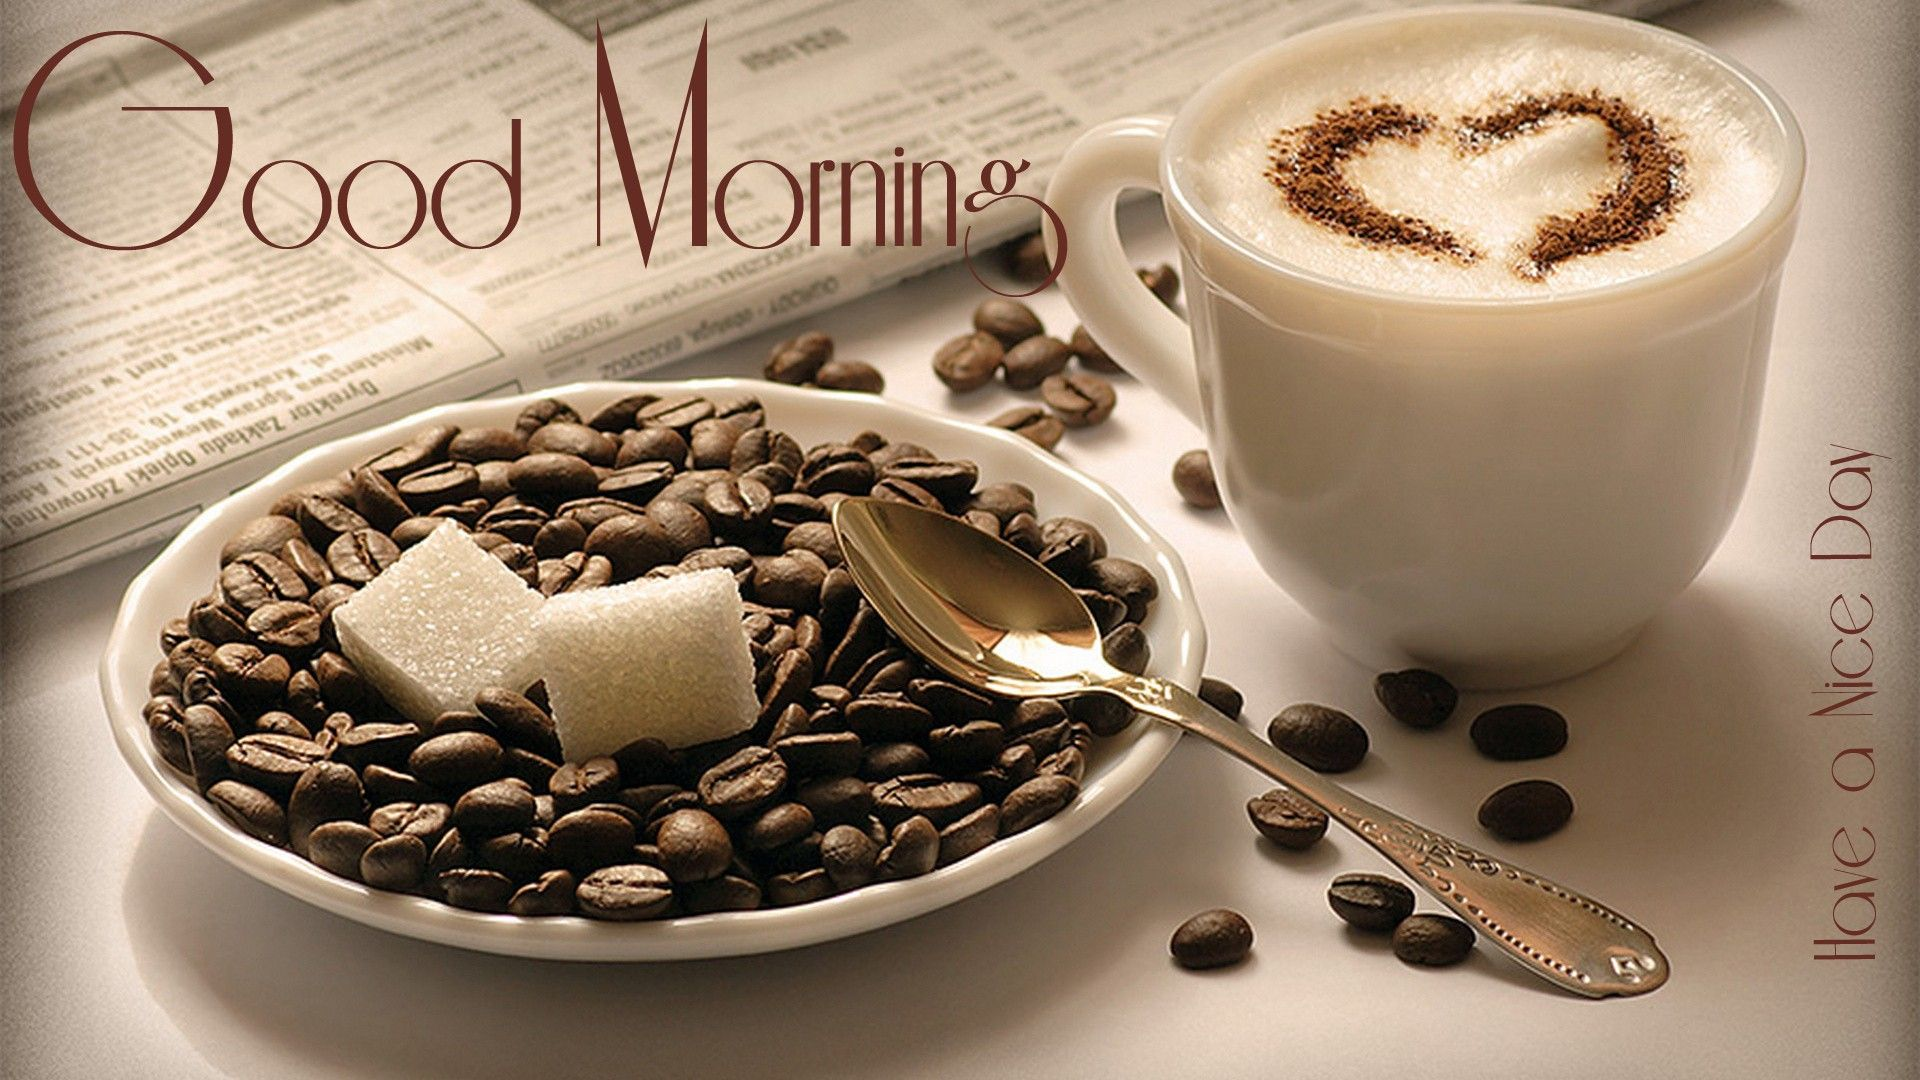 Good Morning Coffee Graphics | ... good-morning-a-cup-of-coffee/][img]alignnone size-full wp-image-53292